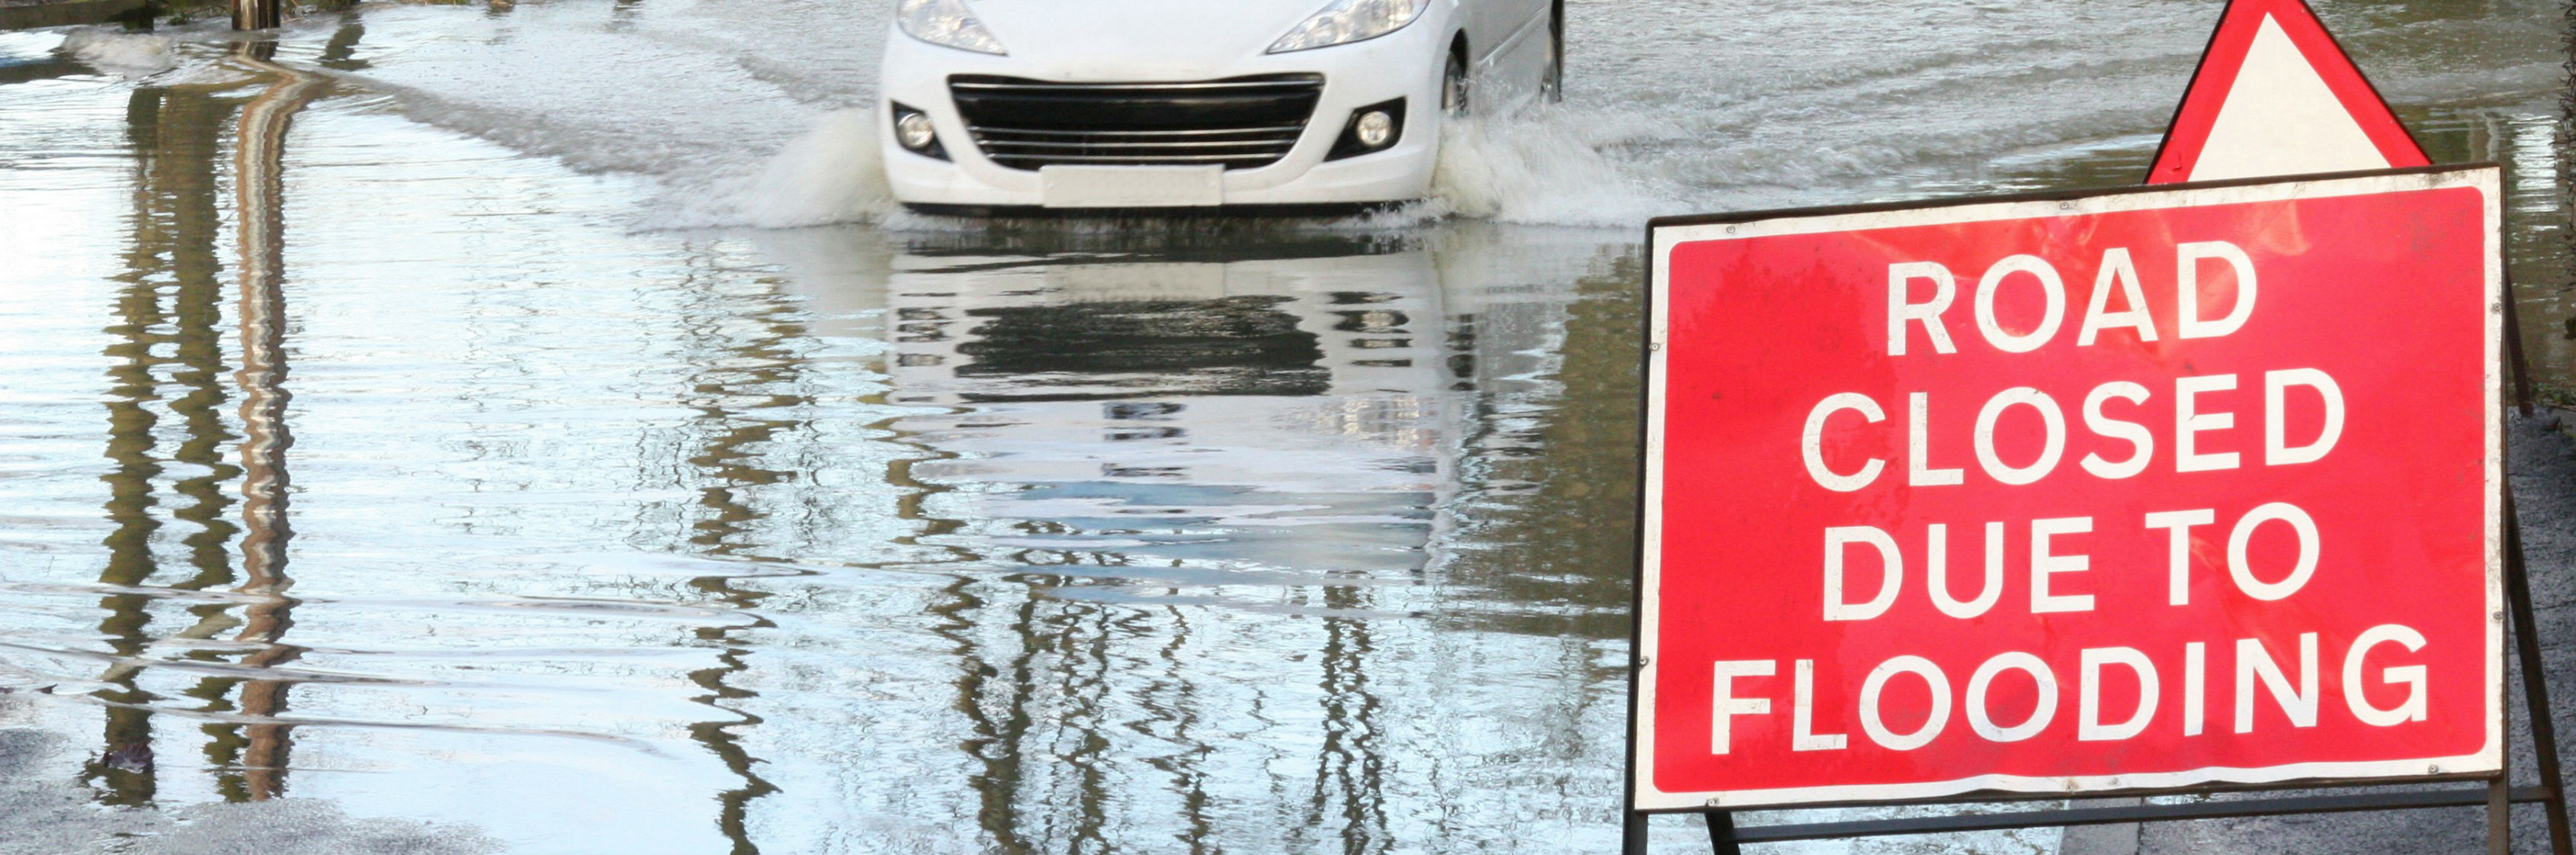 The demand for specialist flood risk management skills continues to grow